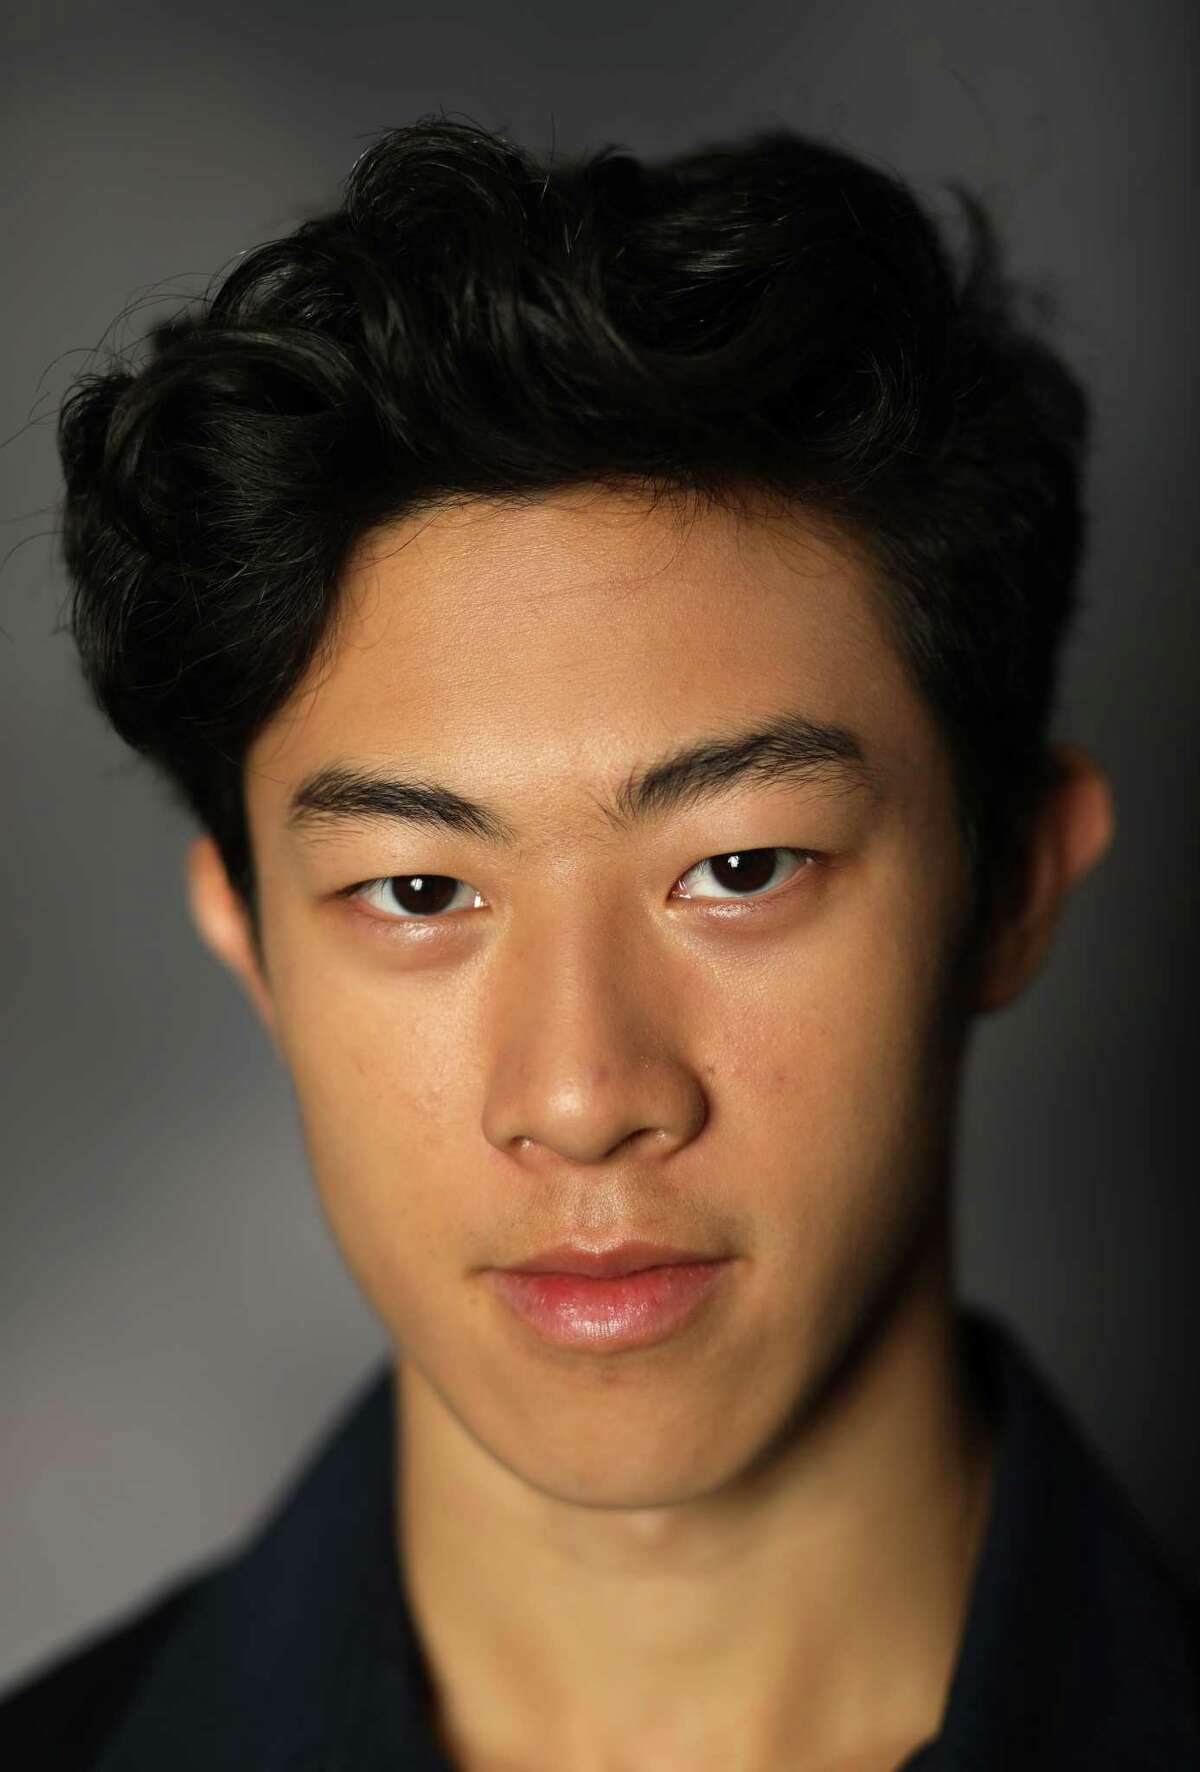 PARK CITY, UT - SEPTEMBER 25: Figure Skater Nathan Chen poses for a portrait during the Team USA Media Summit ahead of the PyeongChang 2018 Olympic Winter Games on September 25, 2017 in Park City, Utah. (Photo by Ezra Shaw/Getty Images) ORG XMIT: 700007615